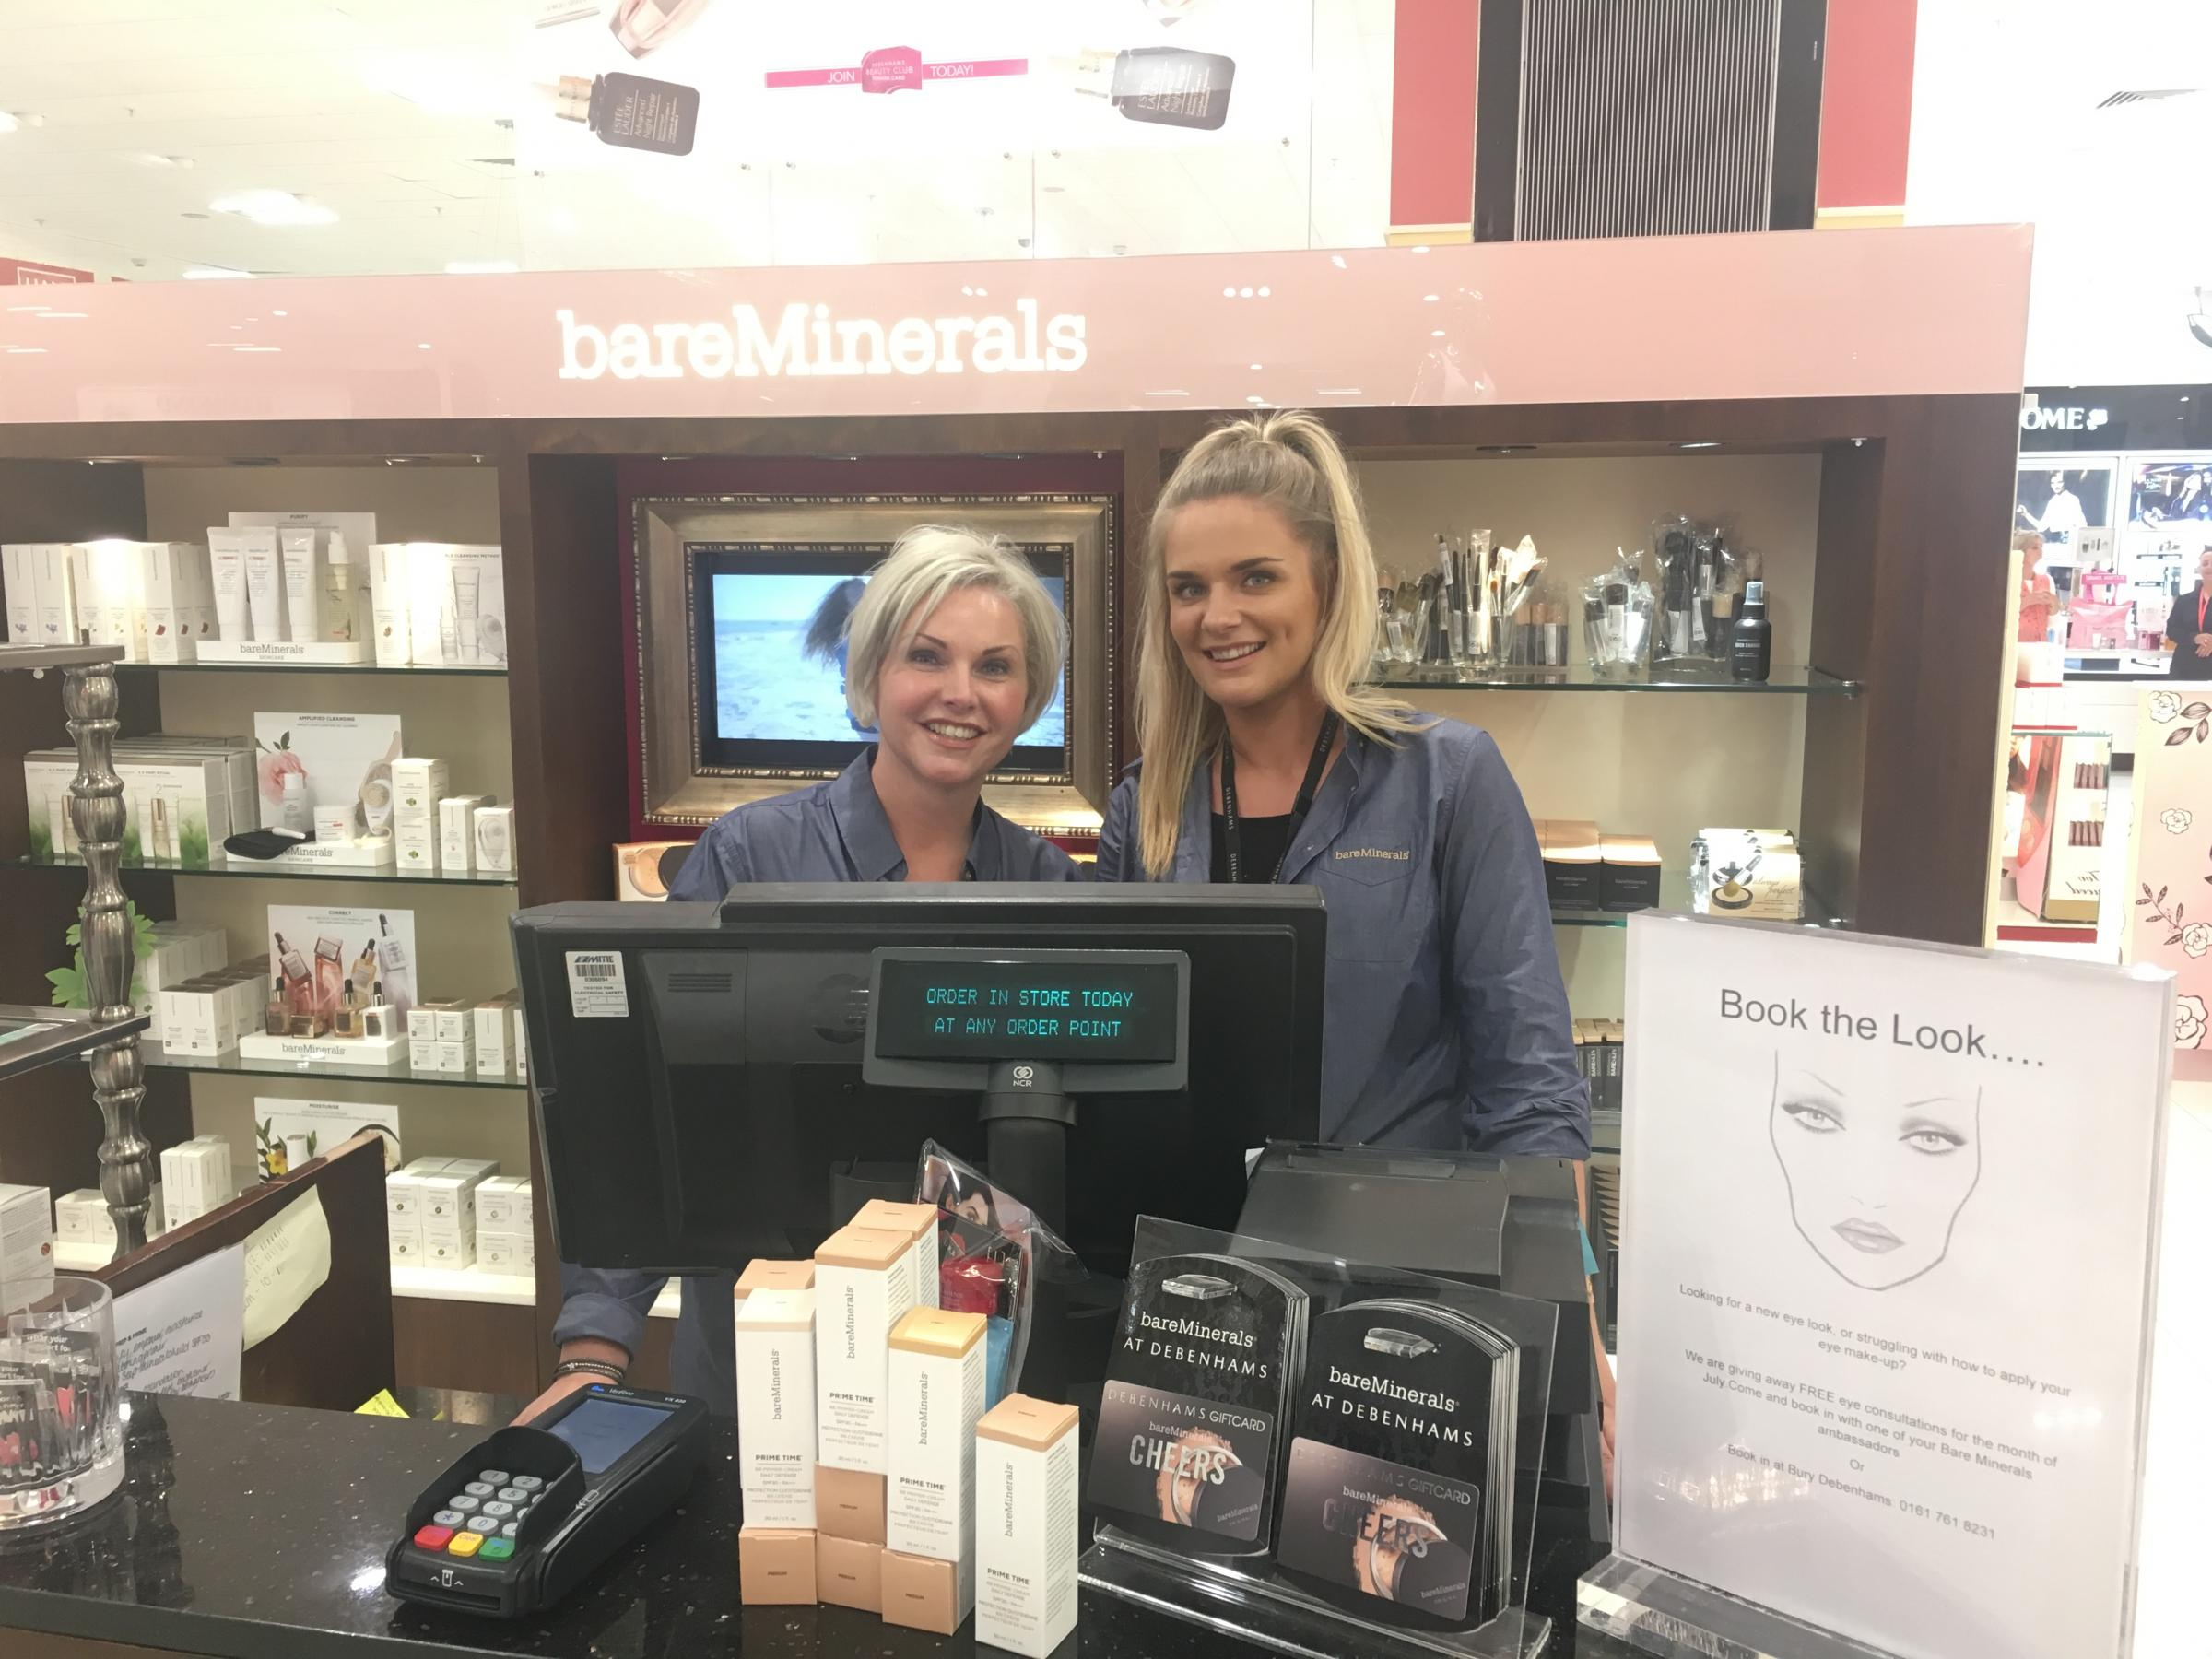 We try out the Bare Minerals 'make-under' look in Bury